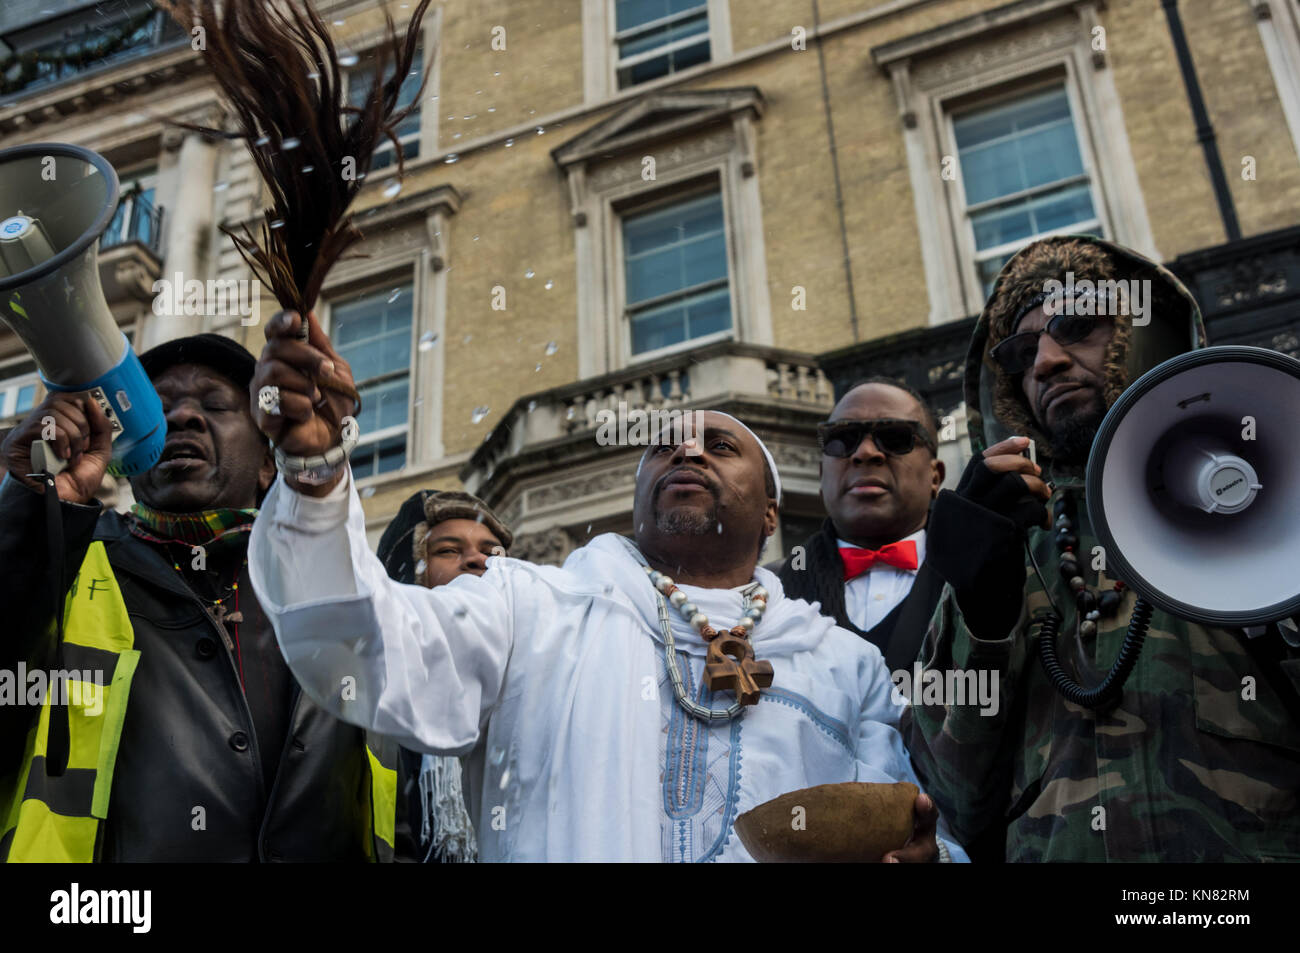 December 9, 2017 - London, UK. 9th December 2017. A man in white robes ends an African libation ceremony in honour - Stock Image